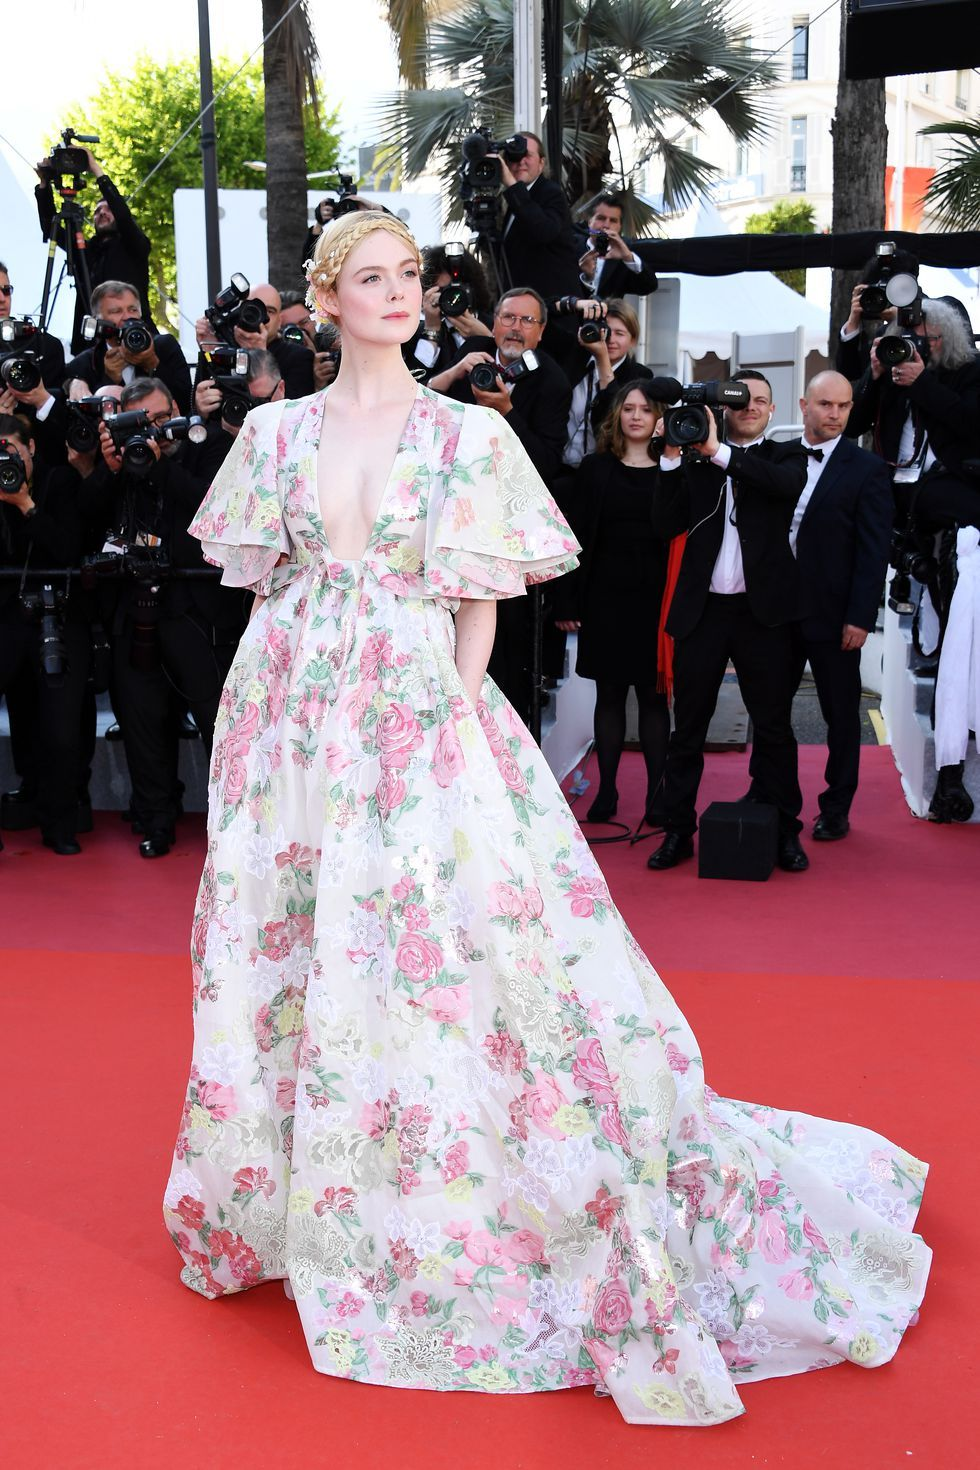 Elle Fanning In Valentino and Chopard jewelry at the premiere of Les Misérables on May 15, 2019.